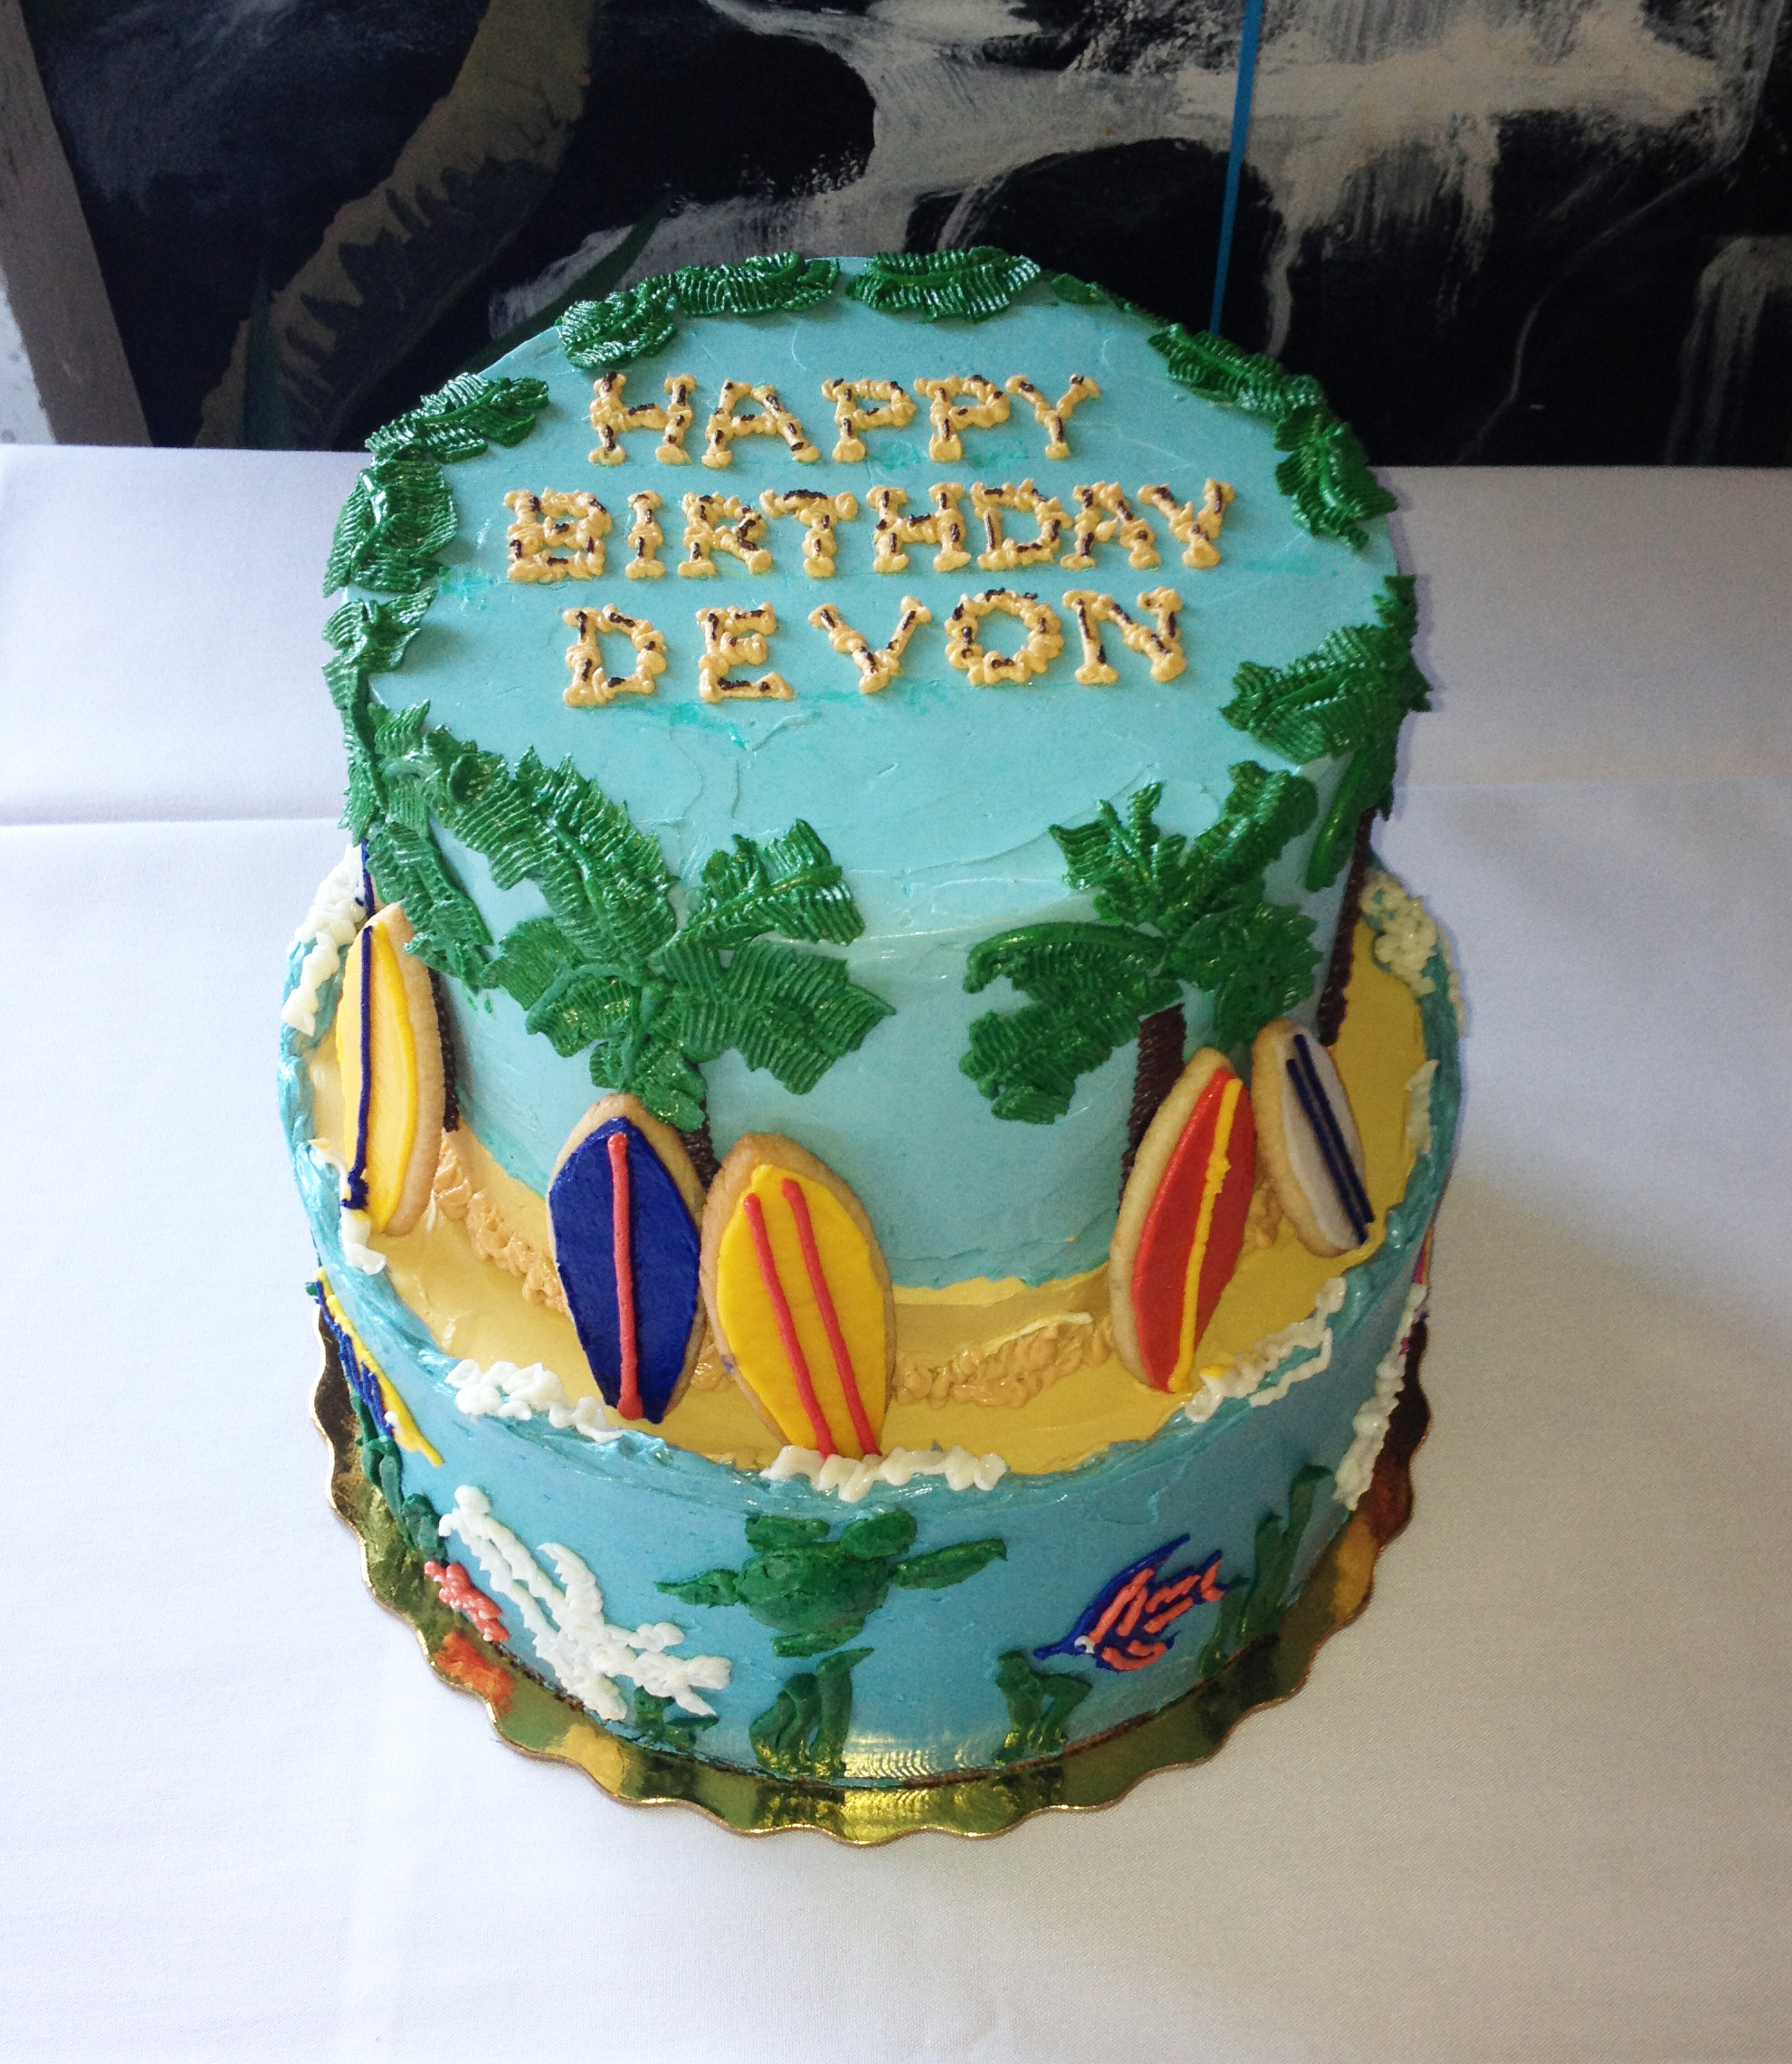 A Hawaiian-themed party demands a cake with complete with cookie surfboards.